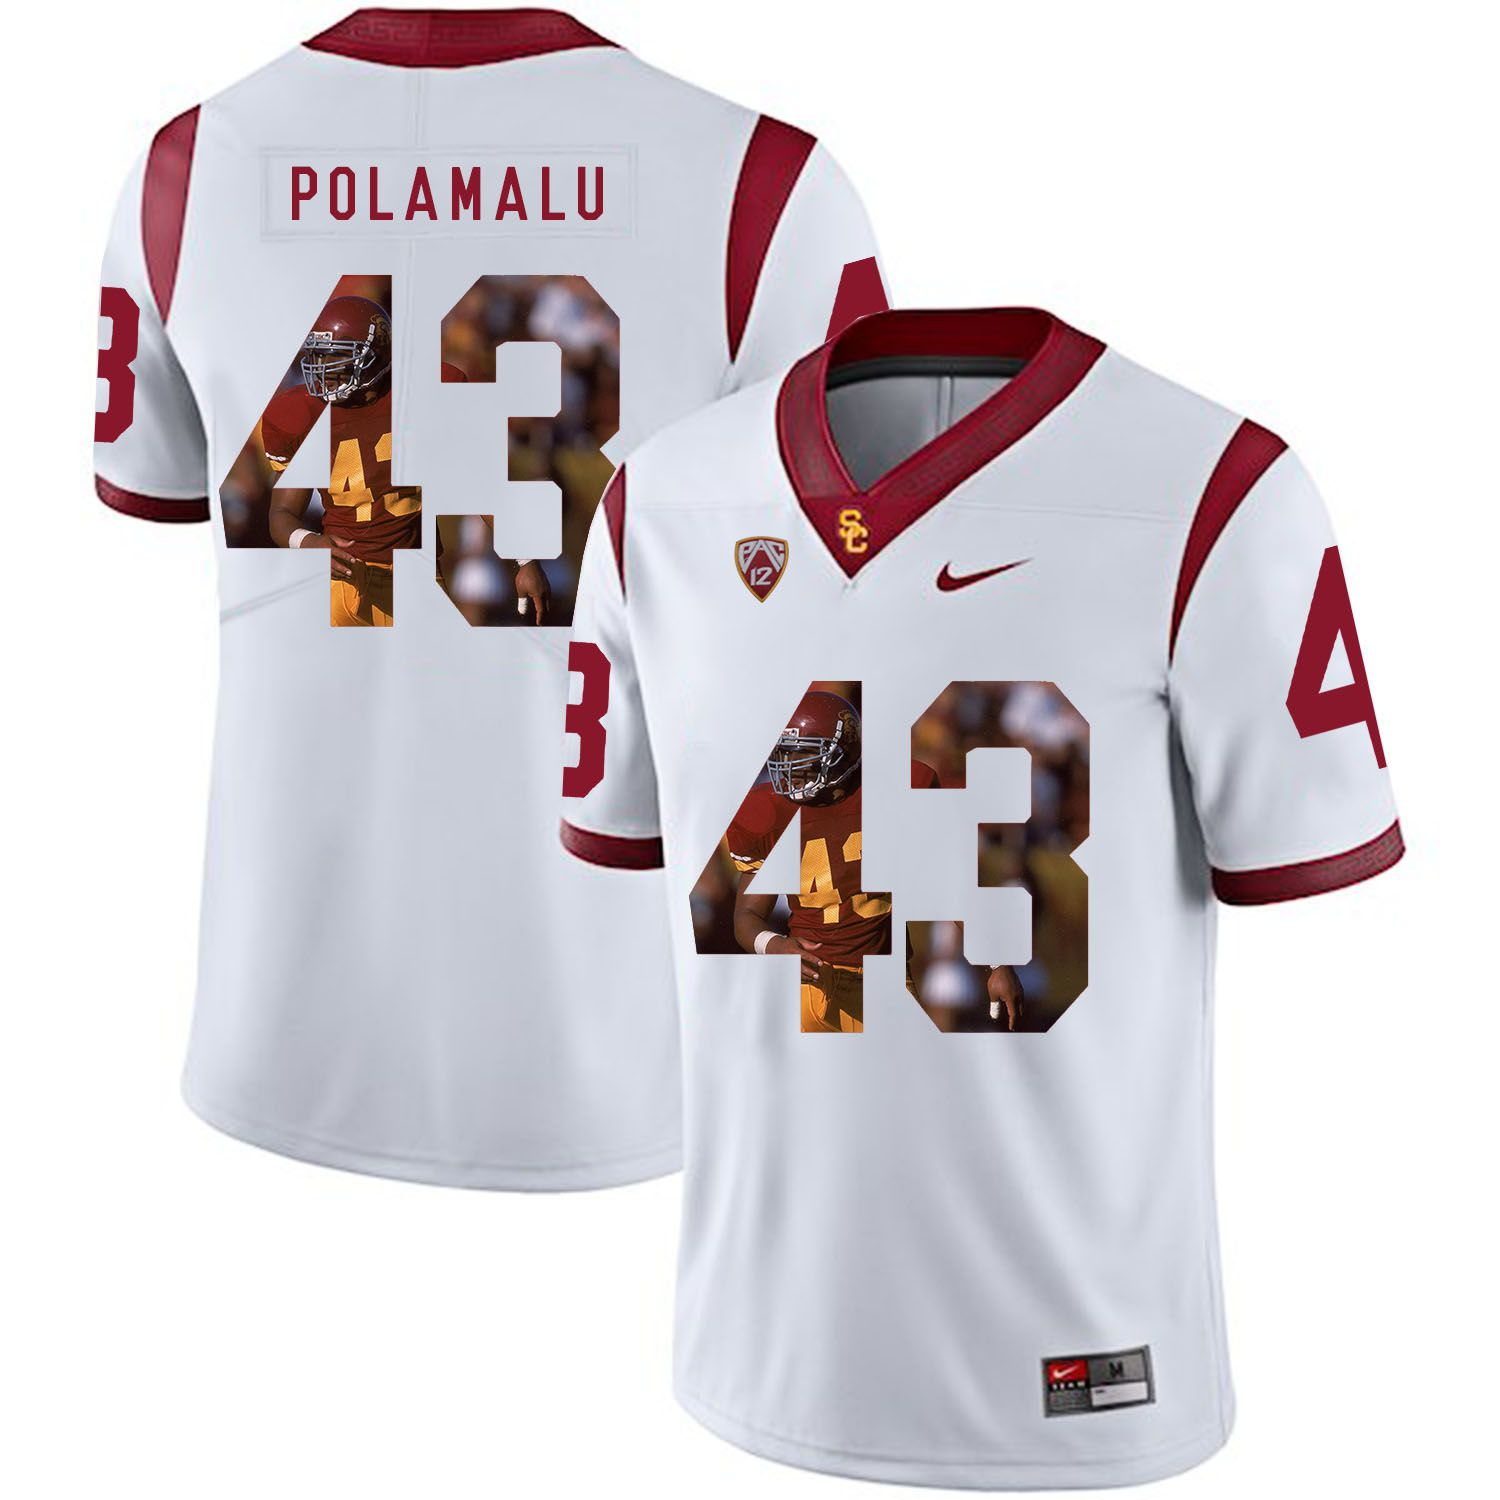 Men USC Trojans 43 Polamalu White Fashion Edition Customized NCAA Jerseys